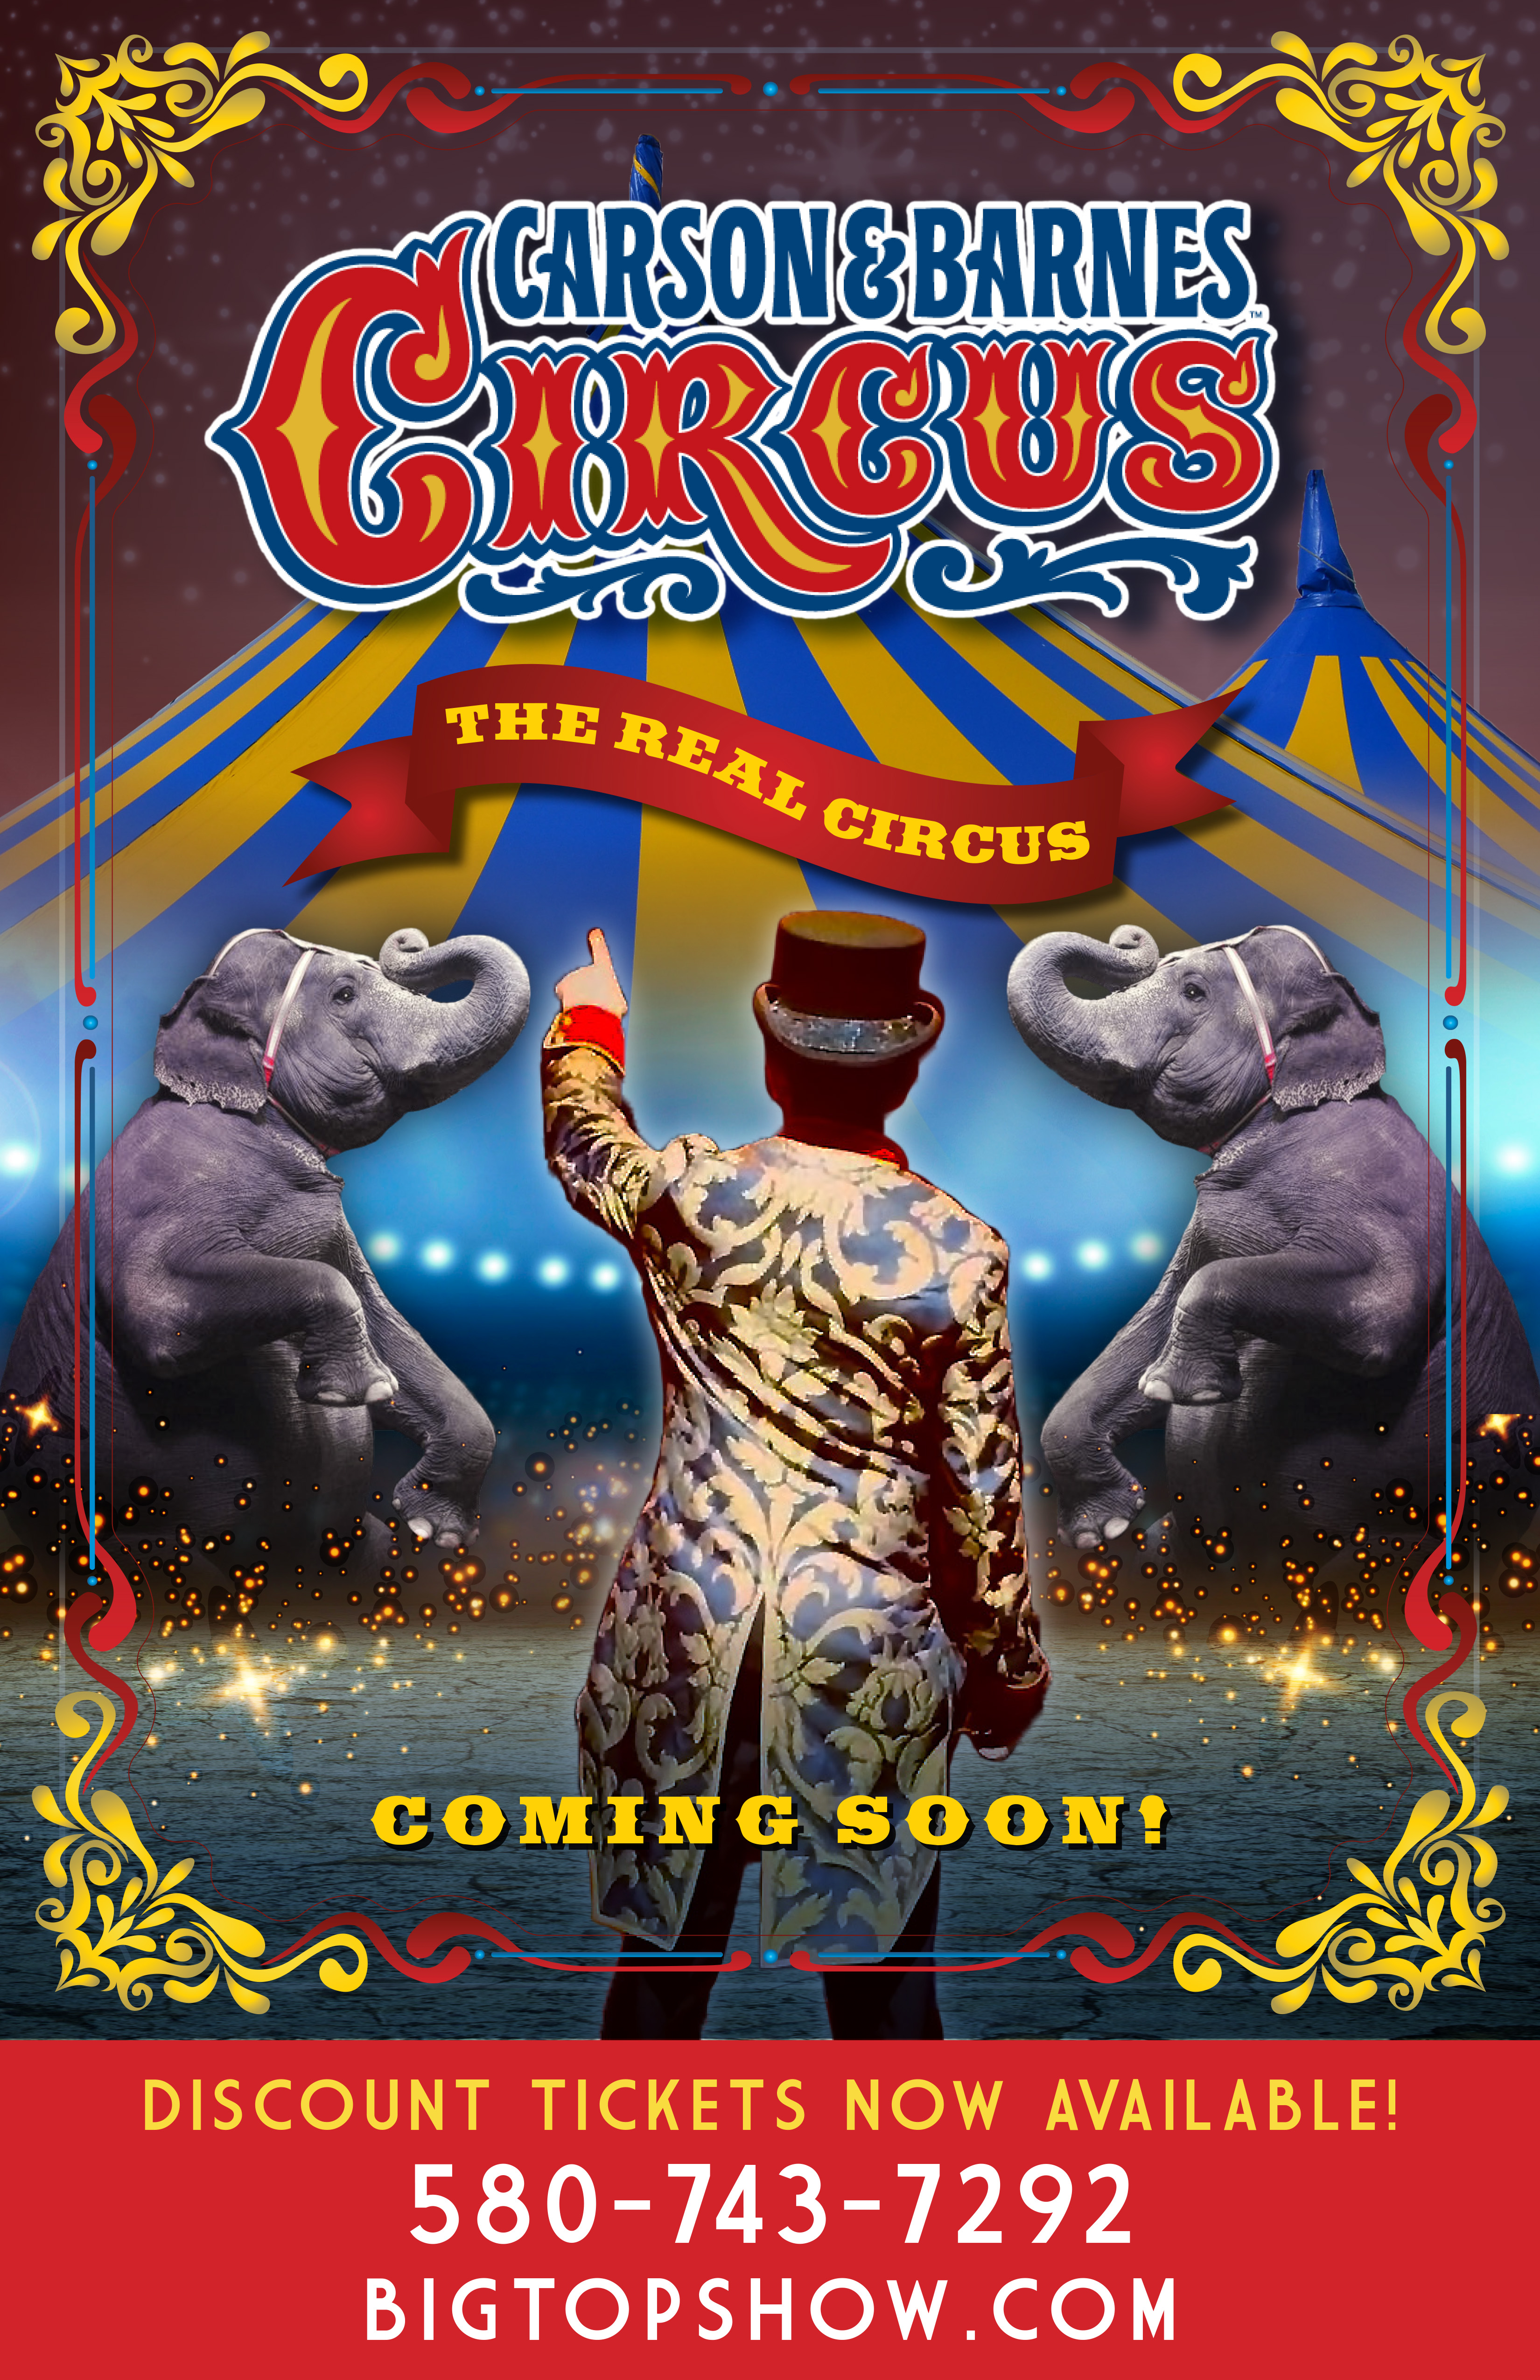 POSTER - The Real Circus